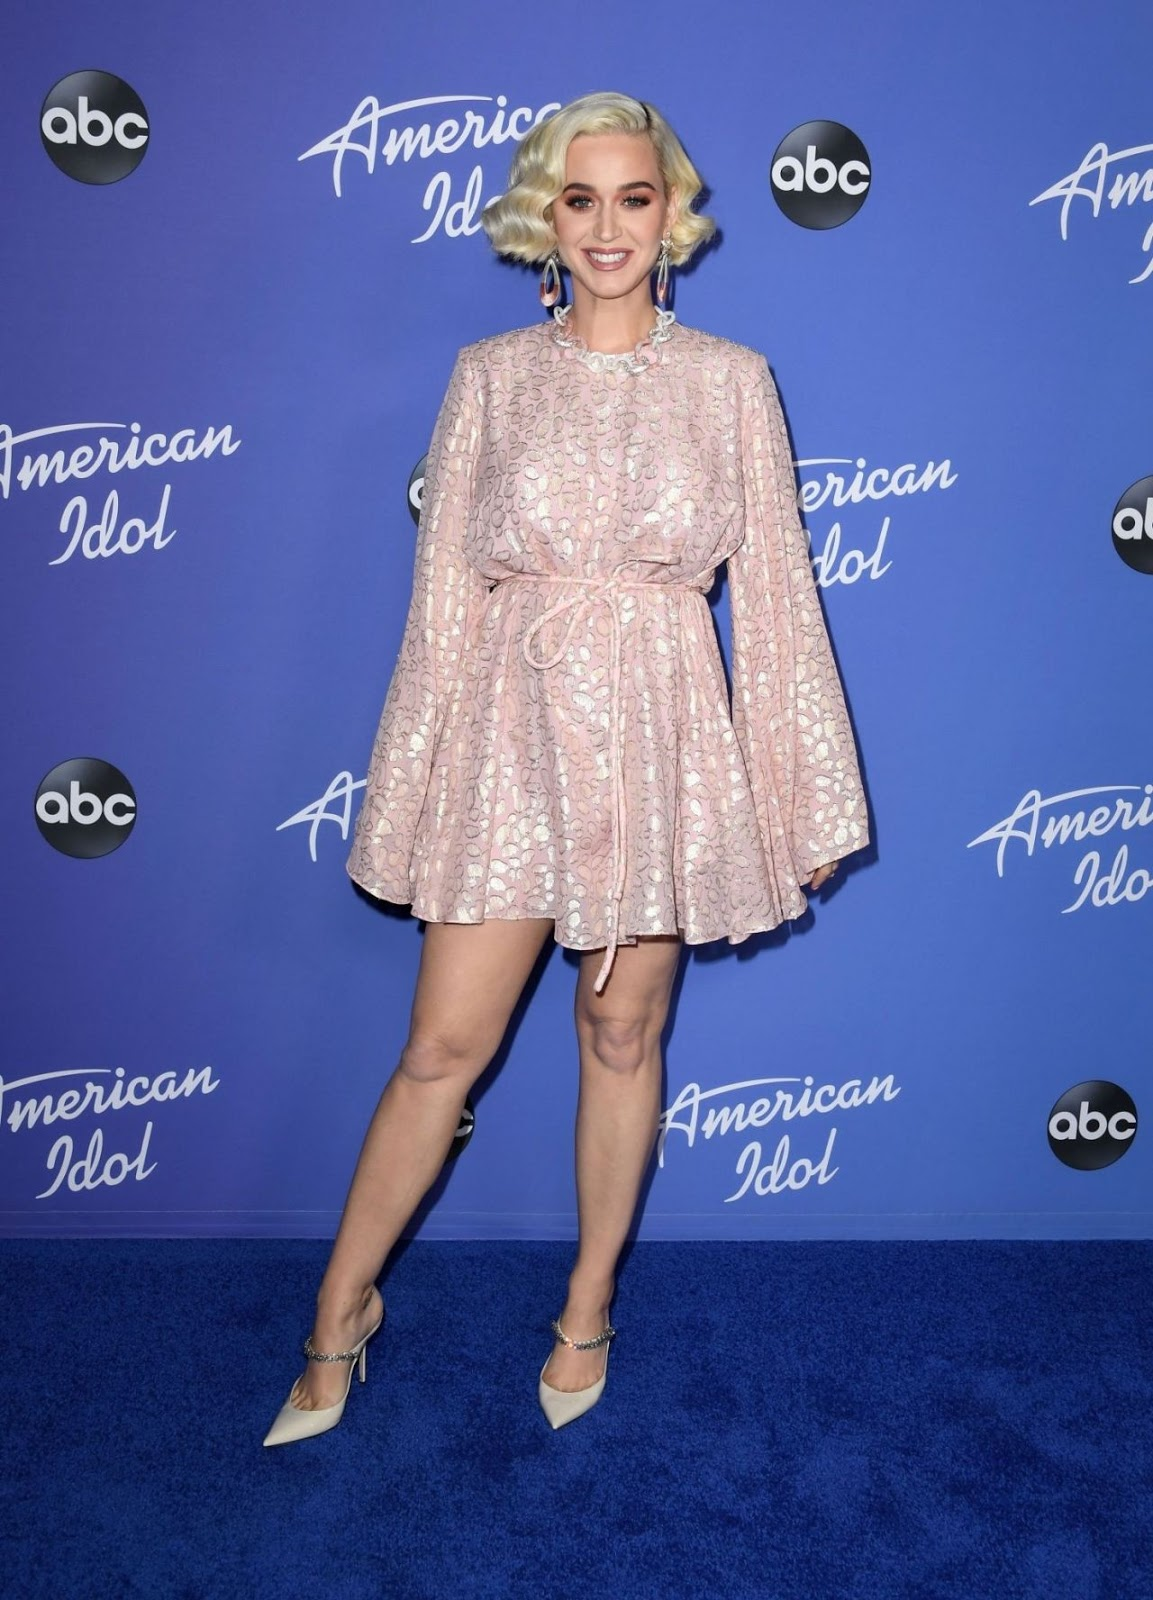 Katy Perry arrives in pink Stella McCartney for the American Idol premiere party in Hollywood